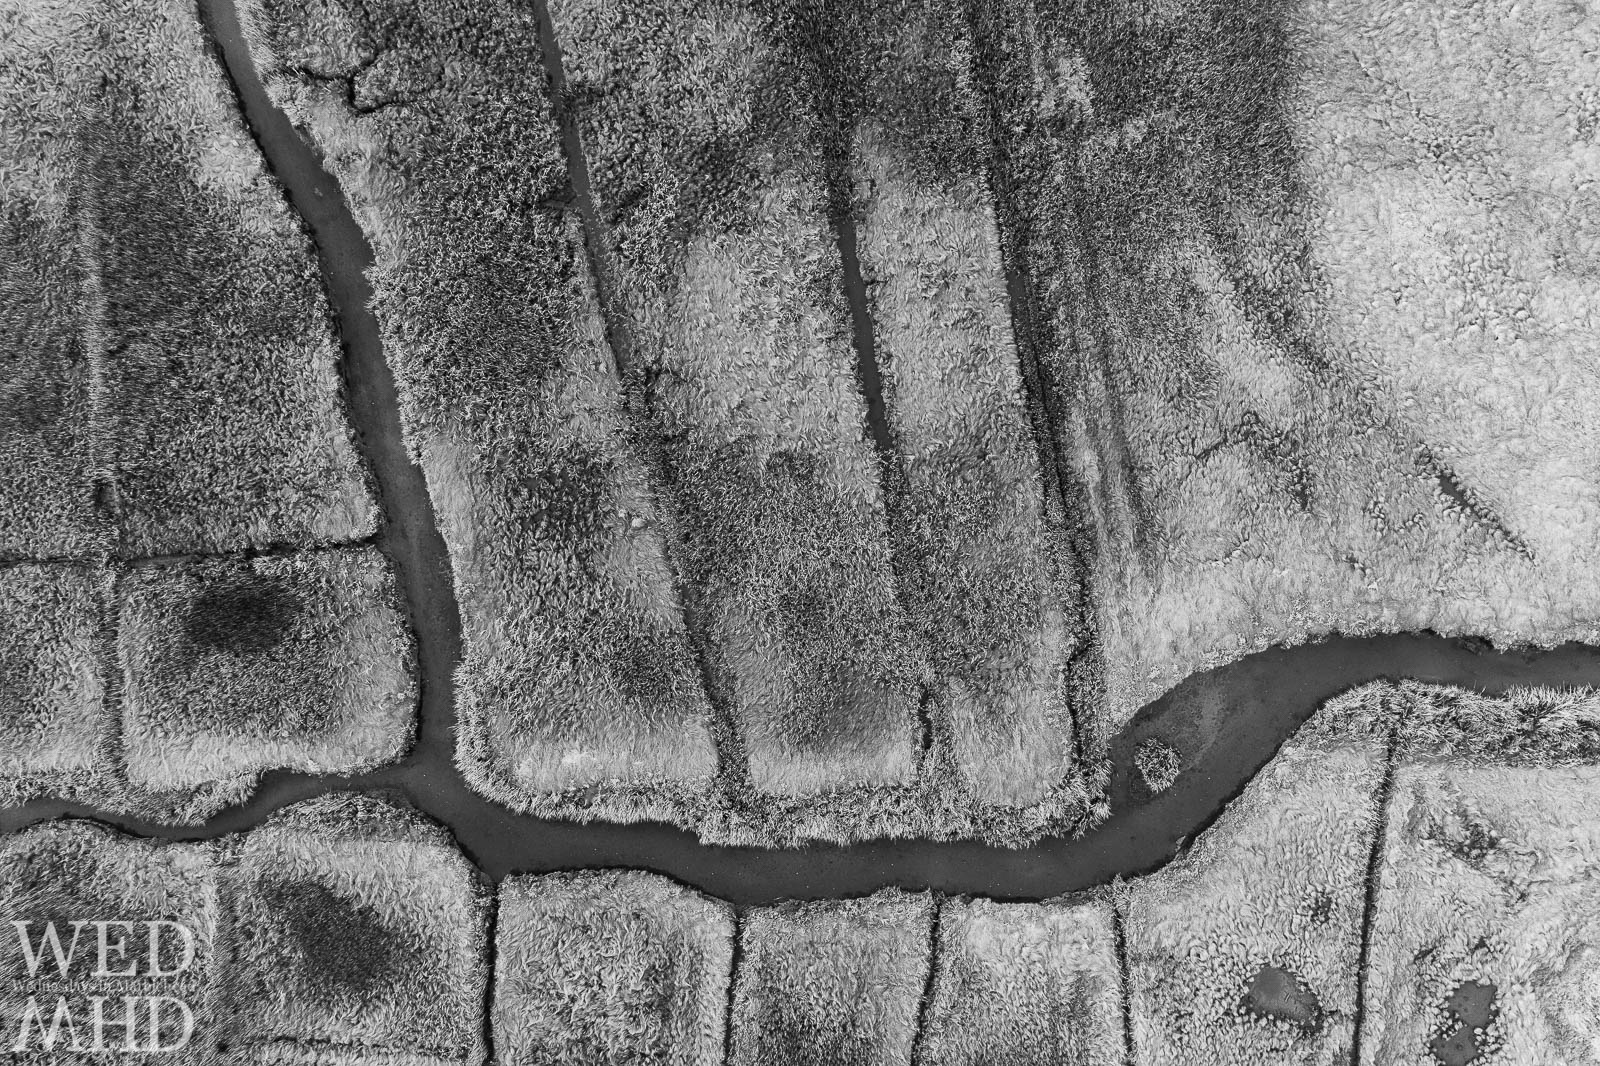 A river runs through Goldthwait Marsh as viewed from overhead in this black and white aerial image